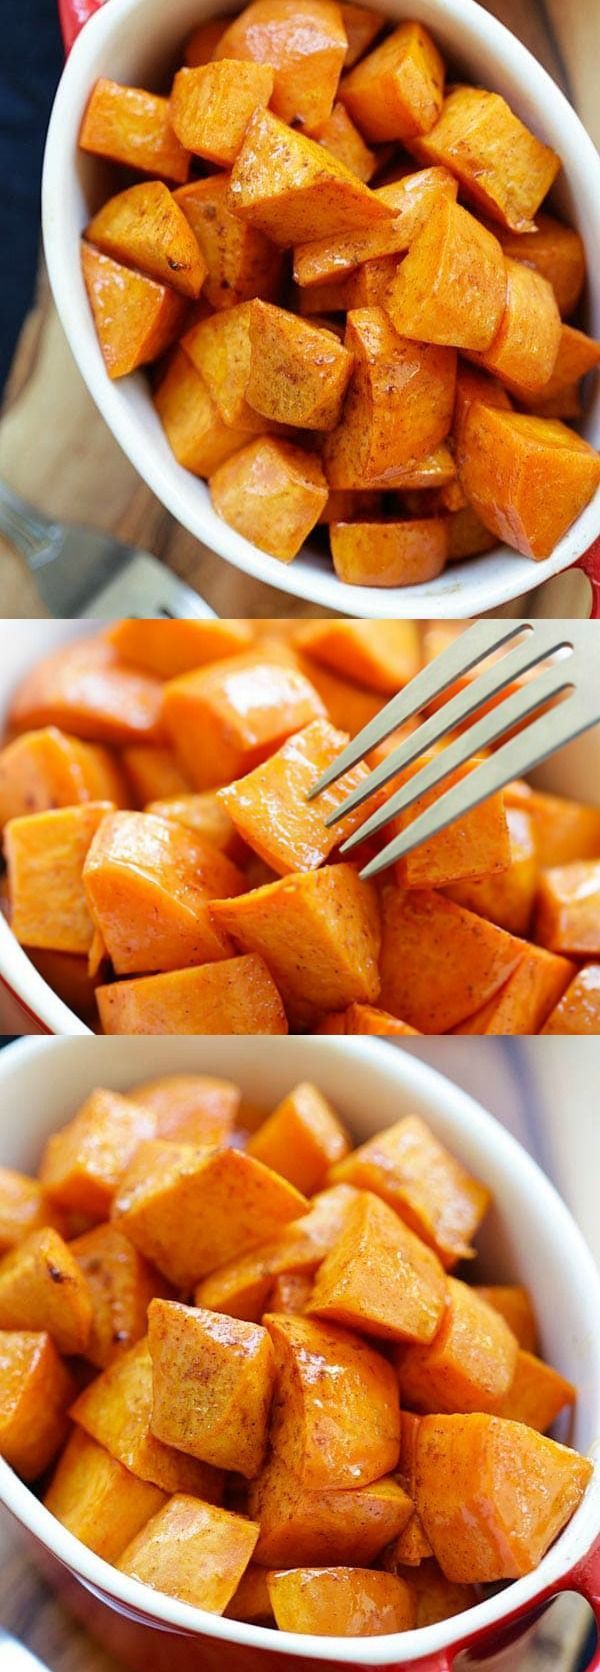 Honey Cinnamon Roasted Sweet Potatoes – the best fall and Thanksgiving side dish that everyone can't stop eating. Easy peasy and fool-proof | rasamalaysia.com